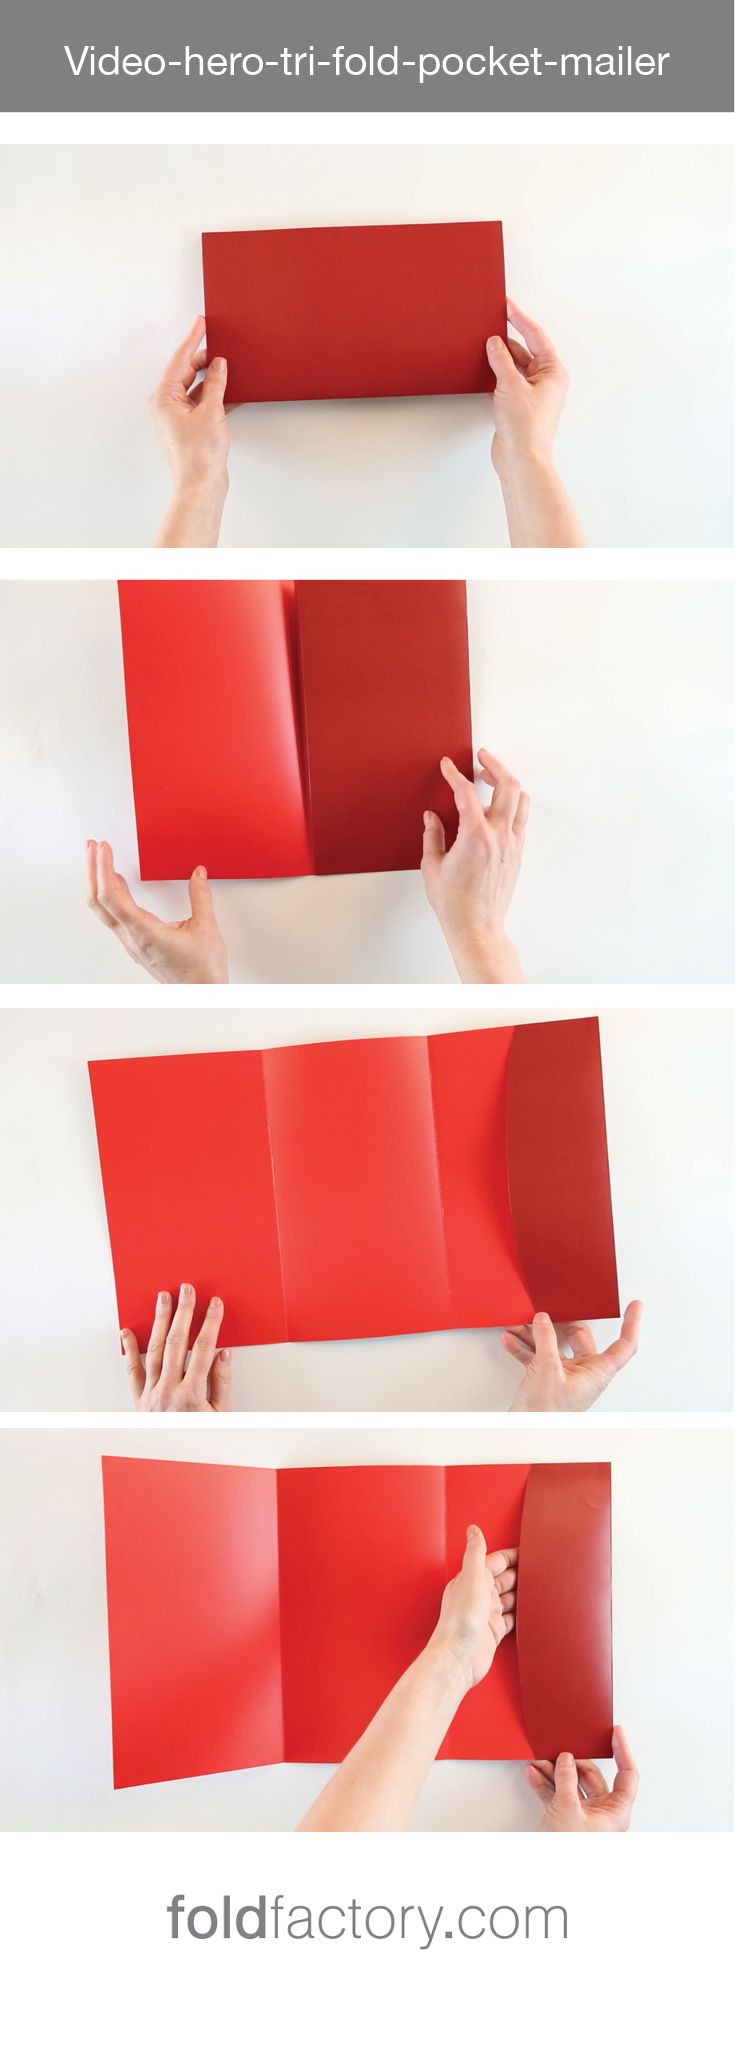 the tri fold pocket mailer is simple and stylish using a classic